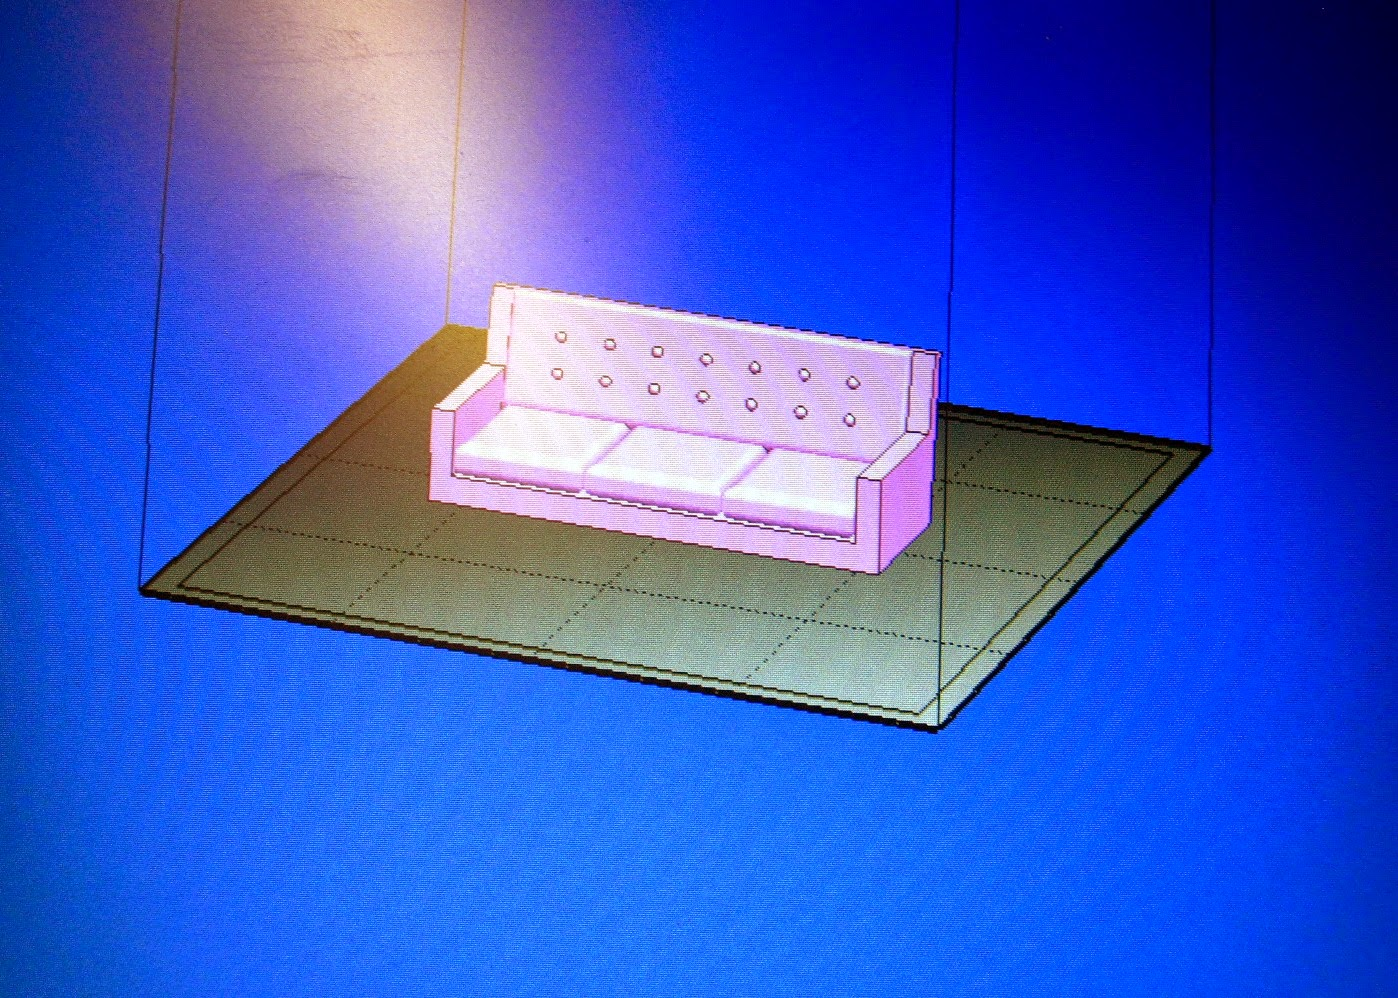 Computer screen showing a miniature 3D printed sofa from Thingiverse.